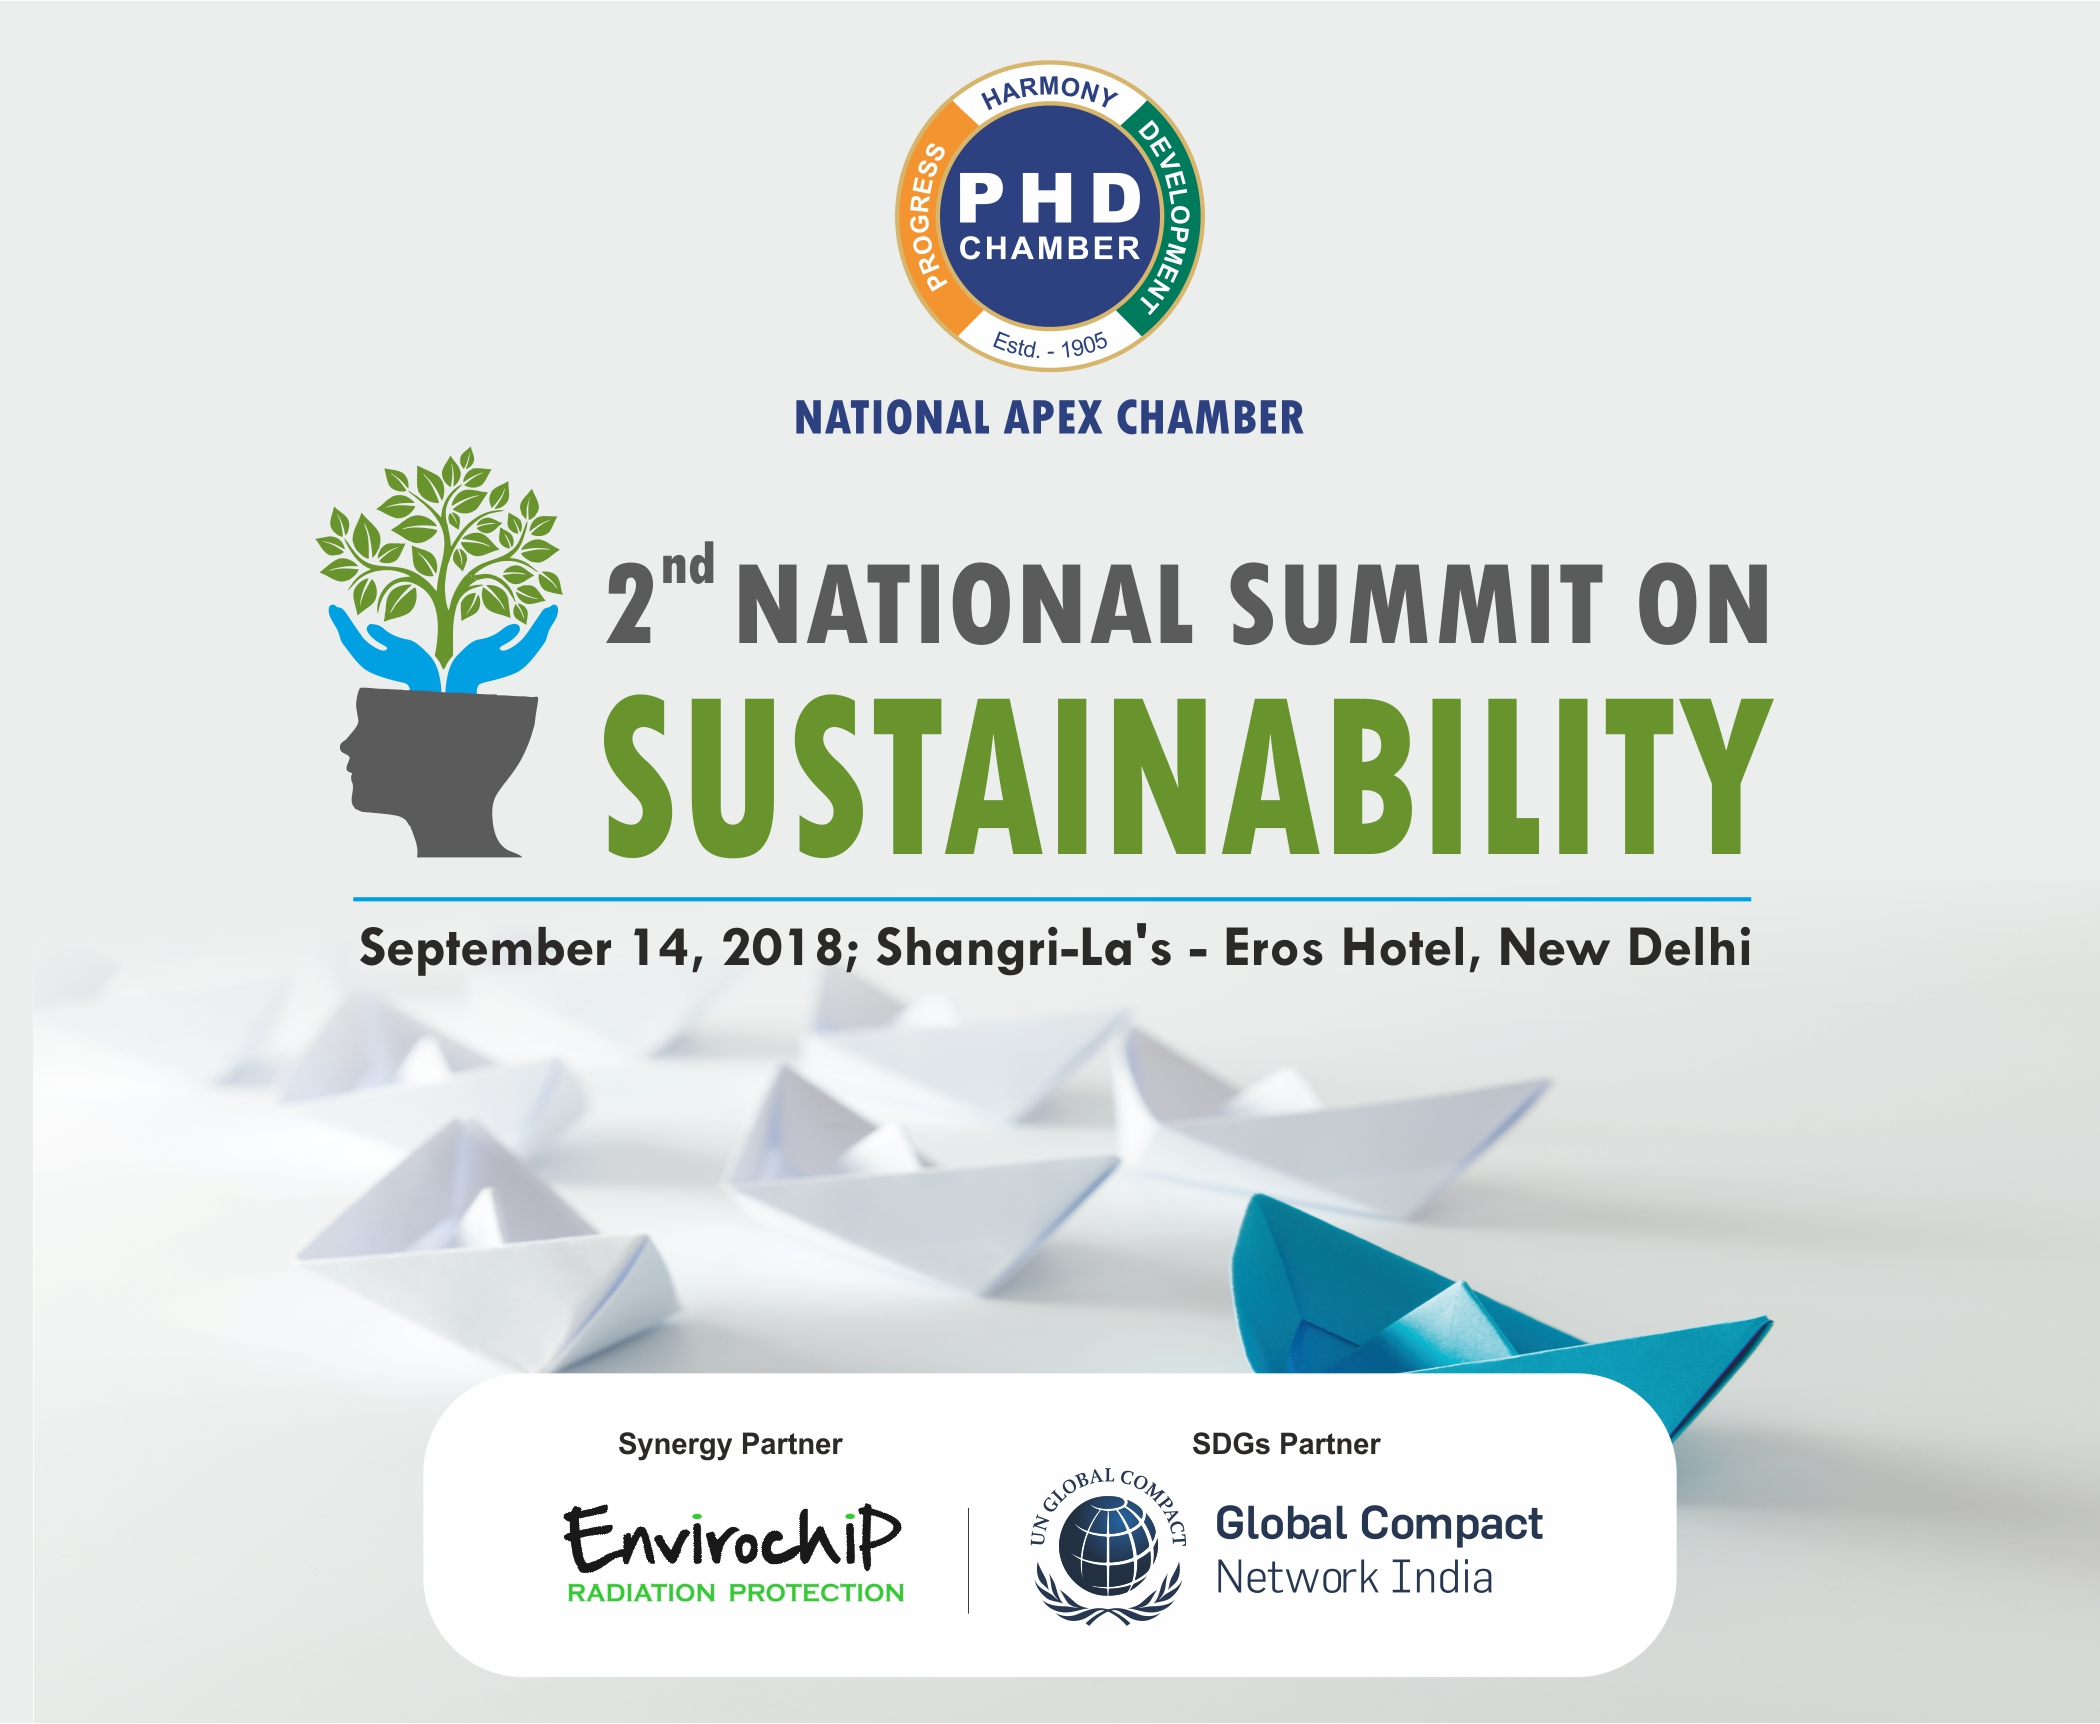 2nd National Summit on Sustainability